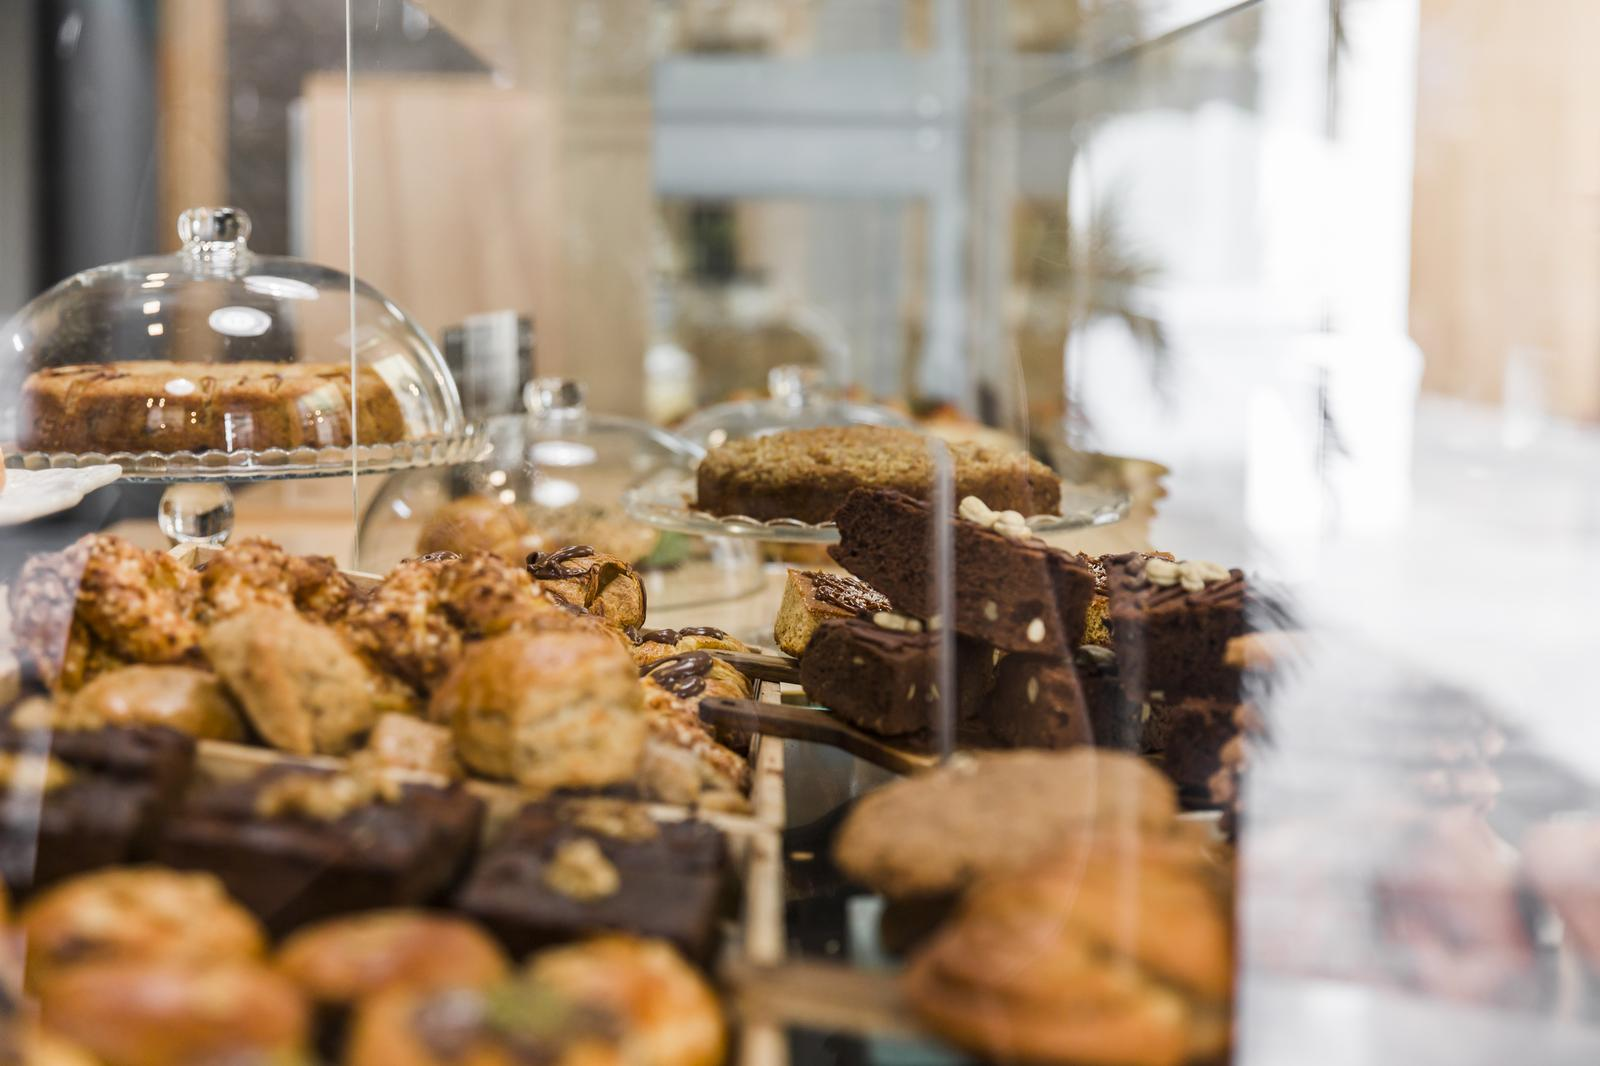 Manufacture of bread; manufacture of fresh pastry goods and cakes in Valga